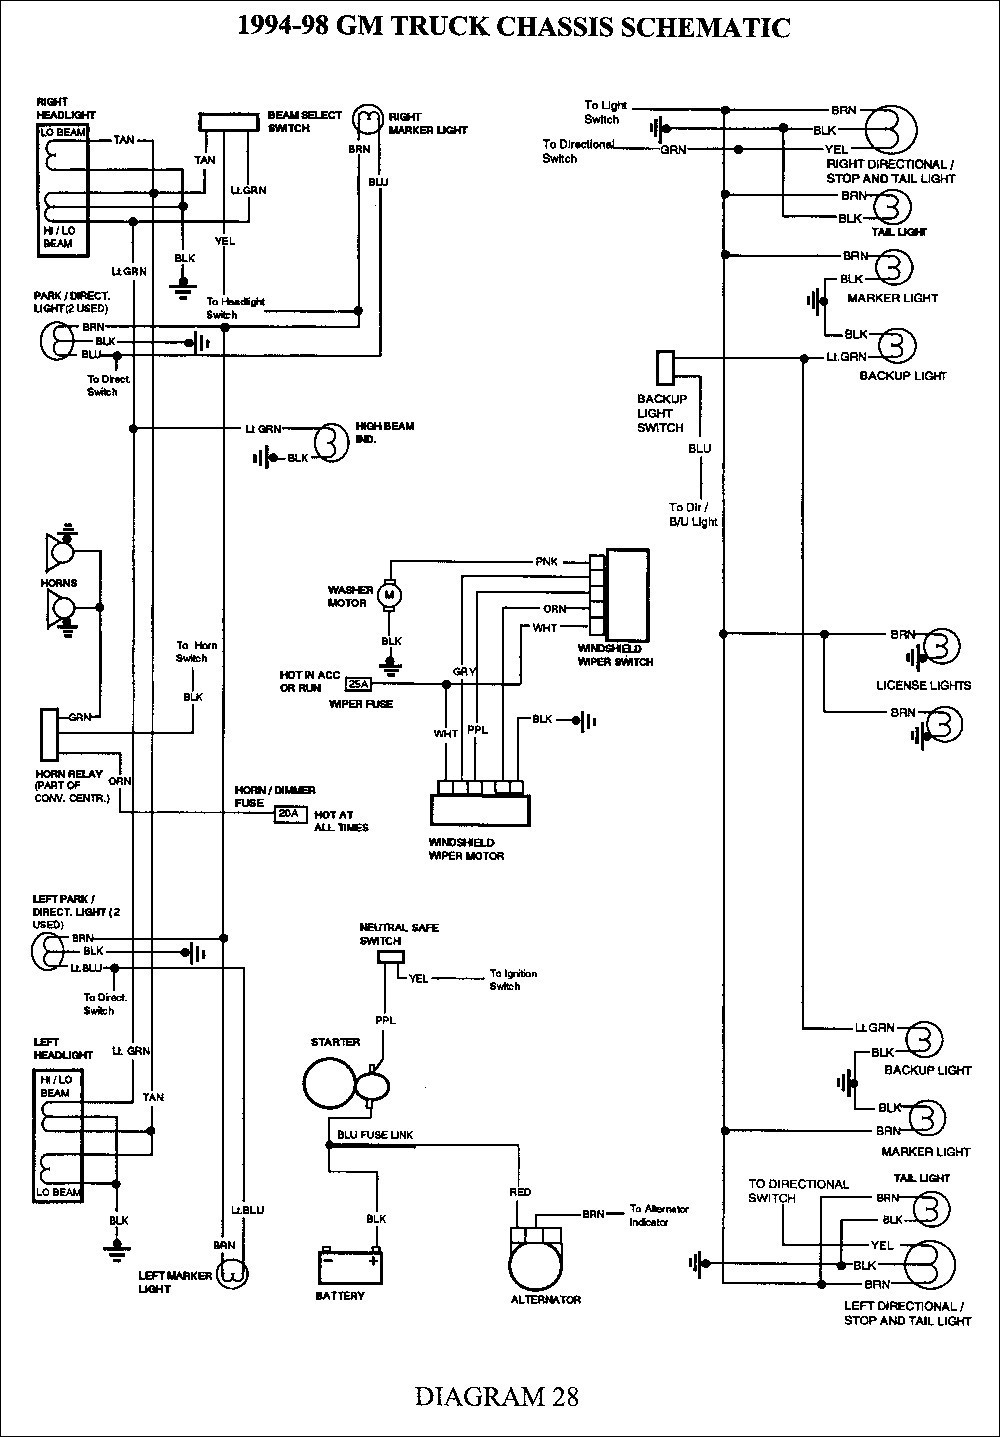 medium resolution of chevy 1500 wiring diagram free picture schematic trusted wiring 91 chevy pickup wiring diagram get free image about wiring diagram